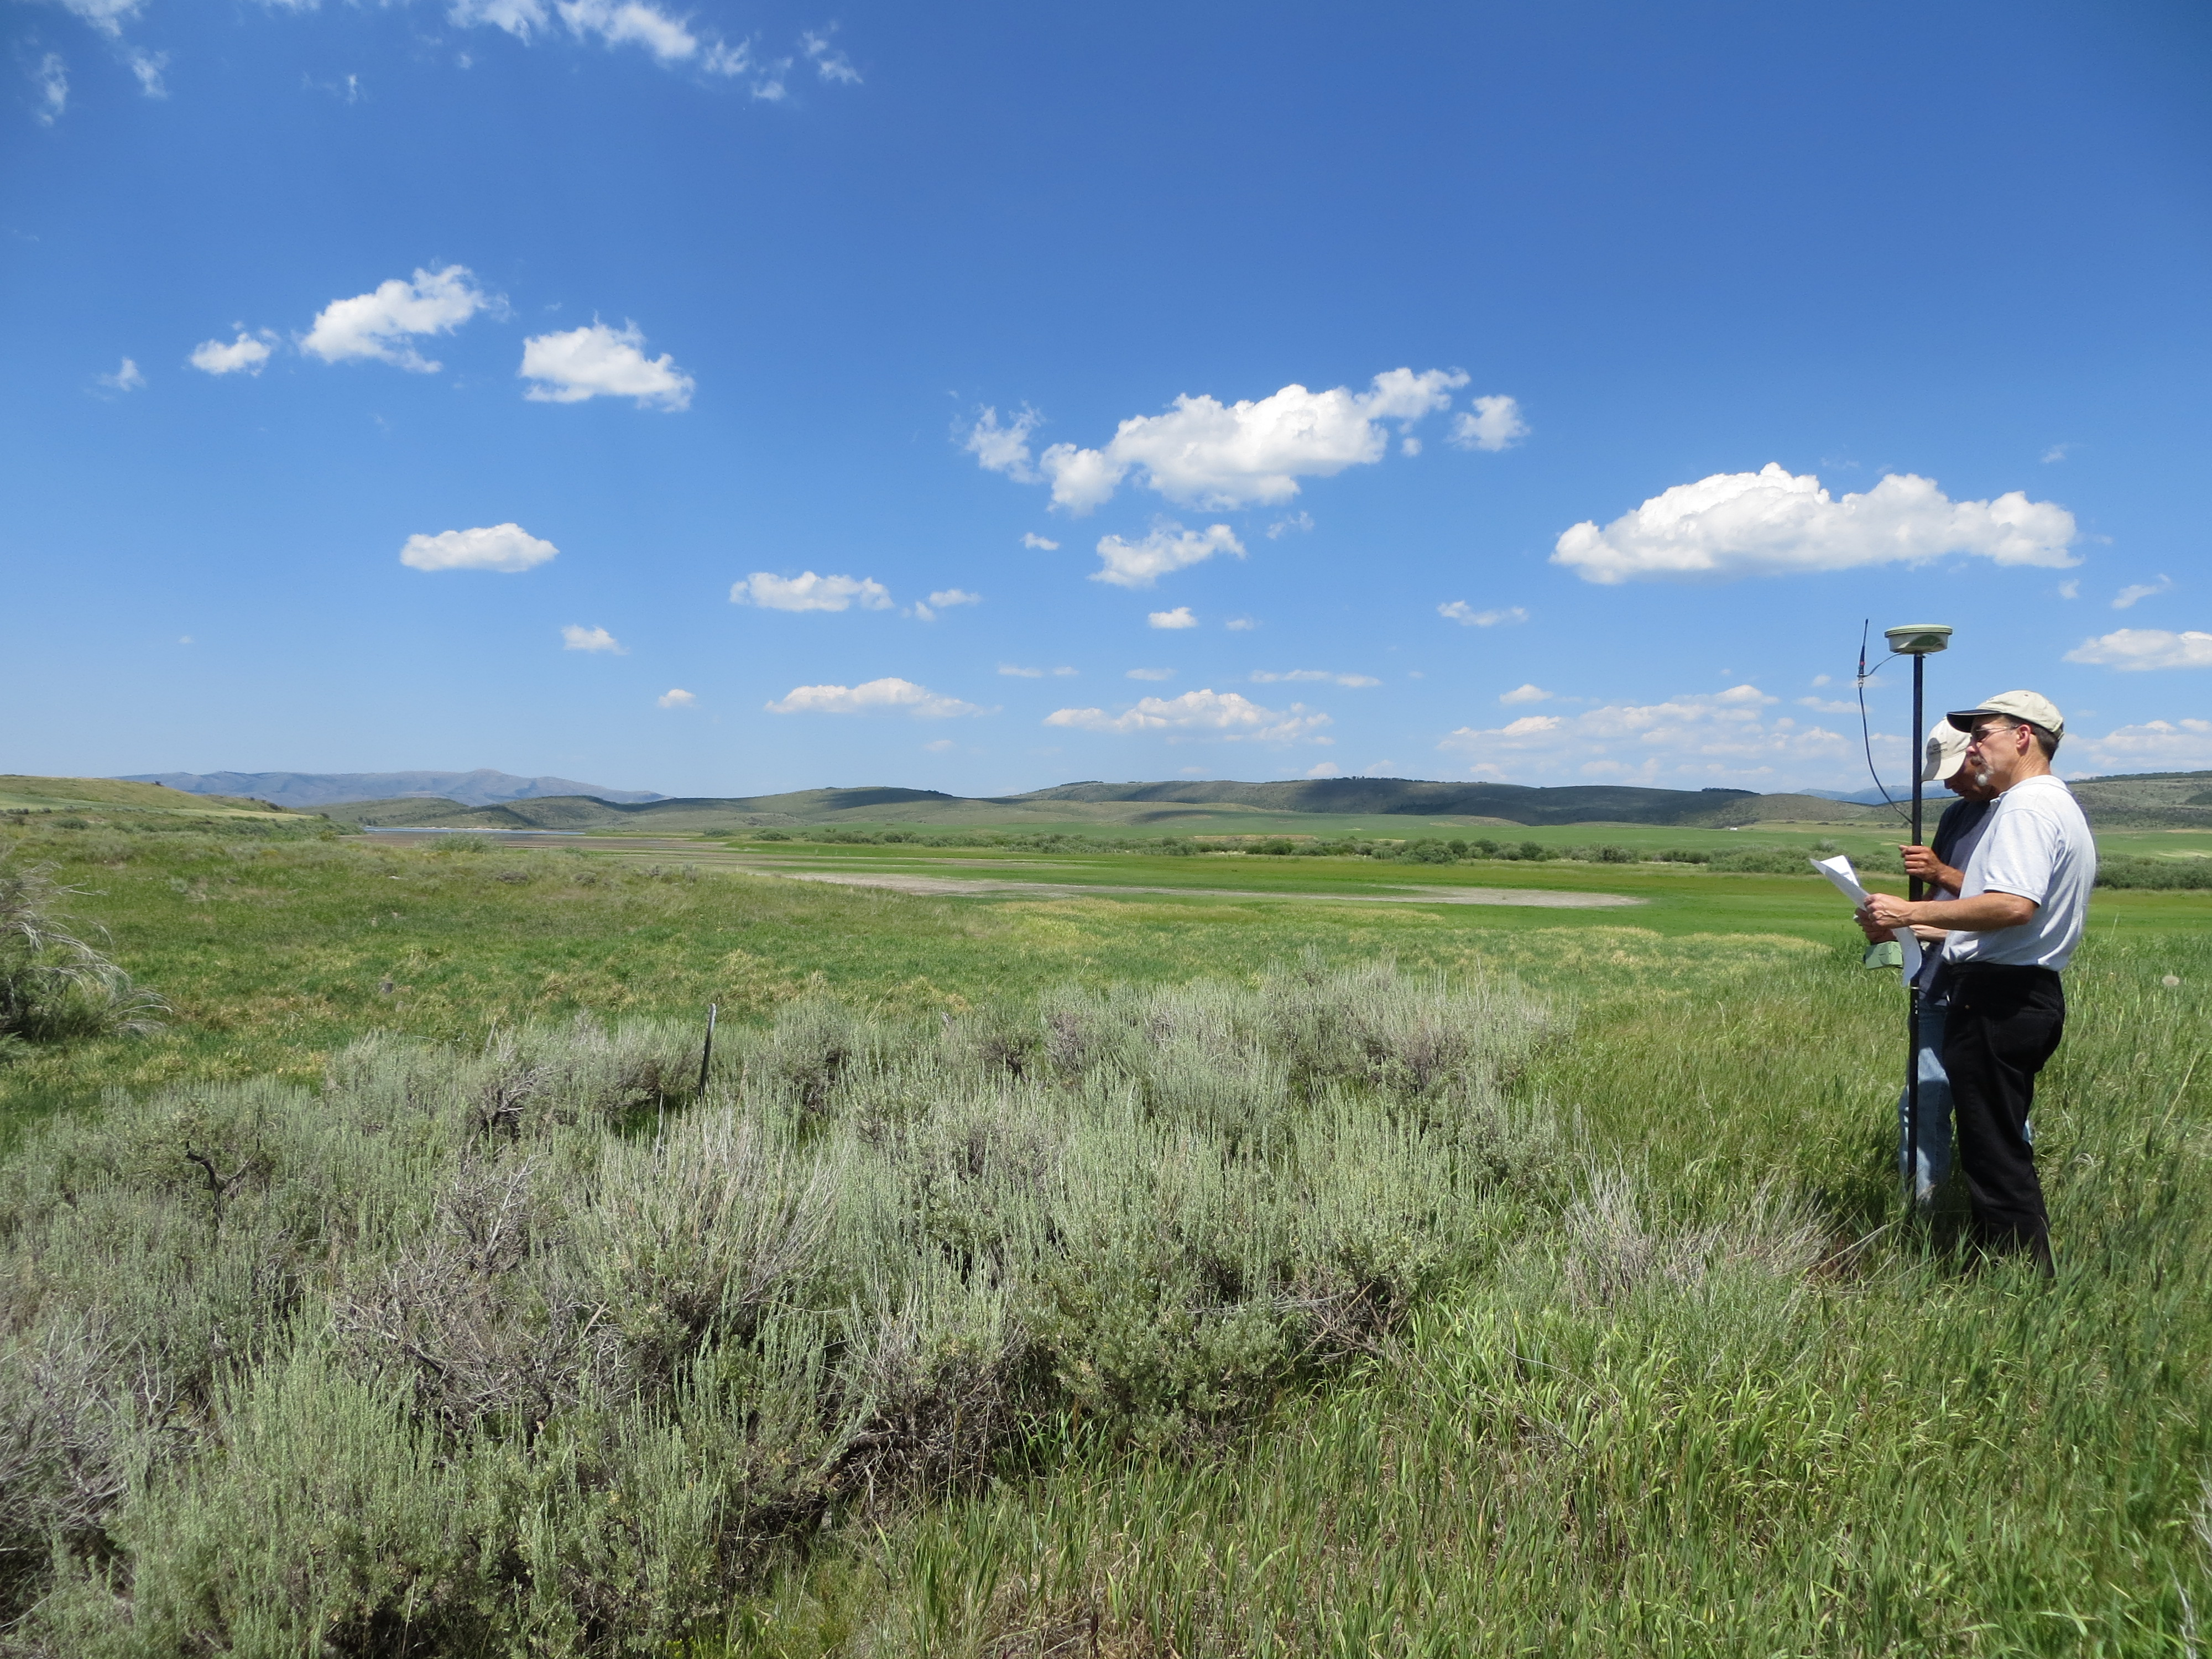 Two men stand in a field, with equipment for evaluating conditions. Sage is growing prominently in the foreground.